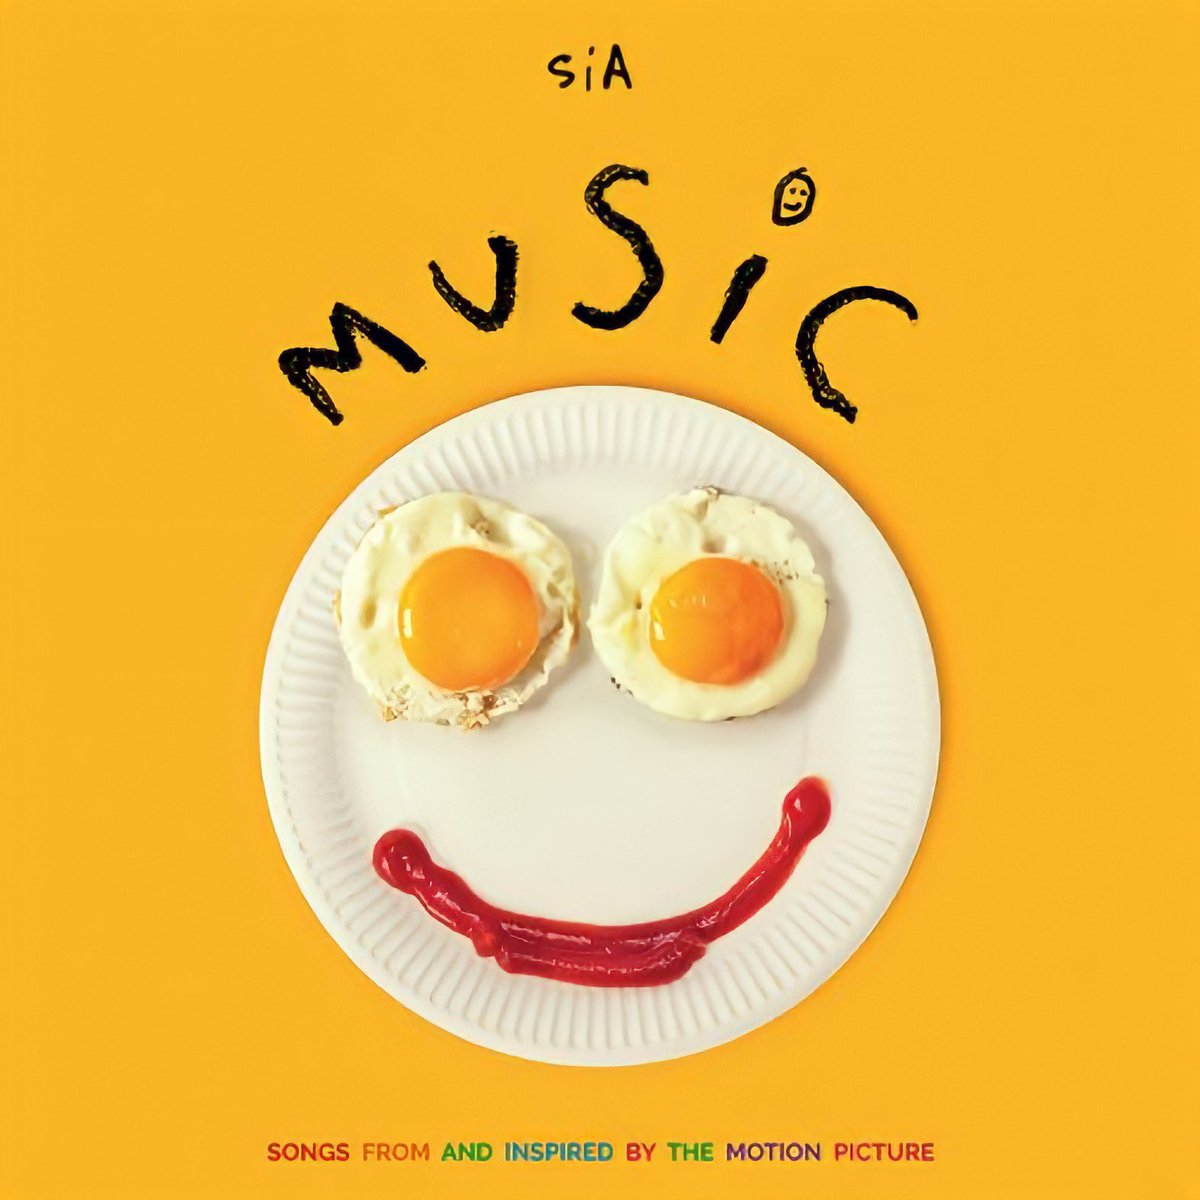 """OFFICIAL COVER ART of @Sia's upcoming album """"MUSIC — Songs From And Inspired By The Motion Picture"""" 💛  Sia's brand NEW SINGLE """"Hey Boy"""" is releasing THURSDAY, November 19th 🥓"""